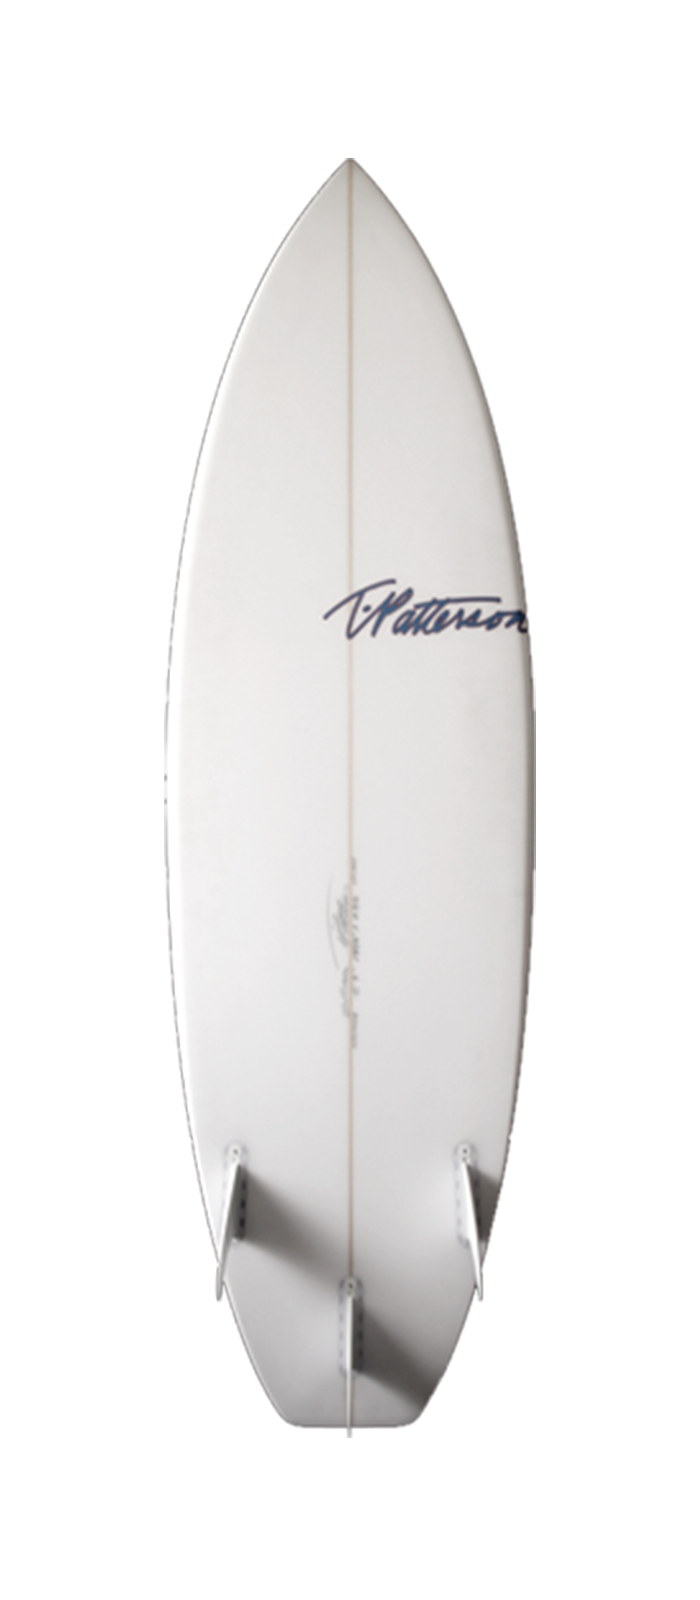 The Clam surfboard model bottom